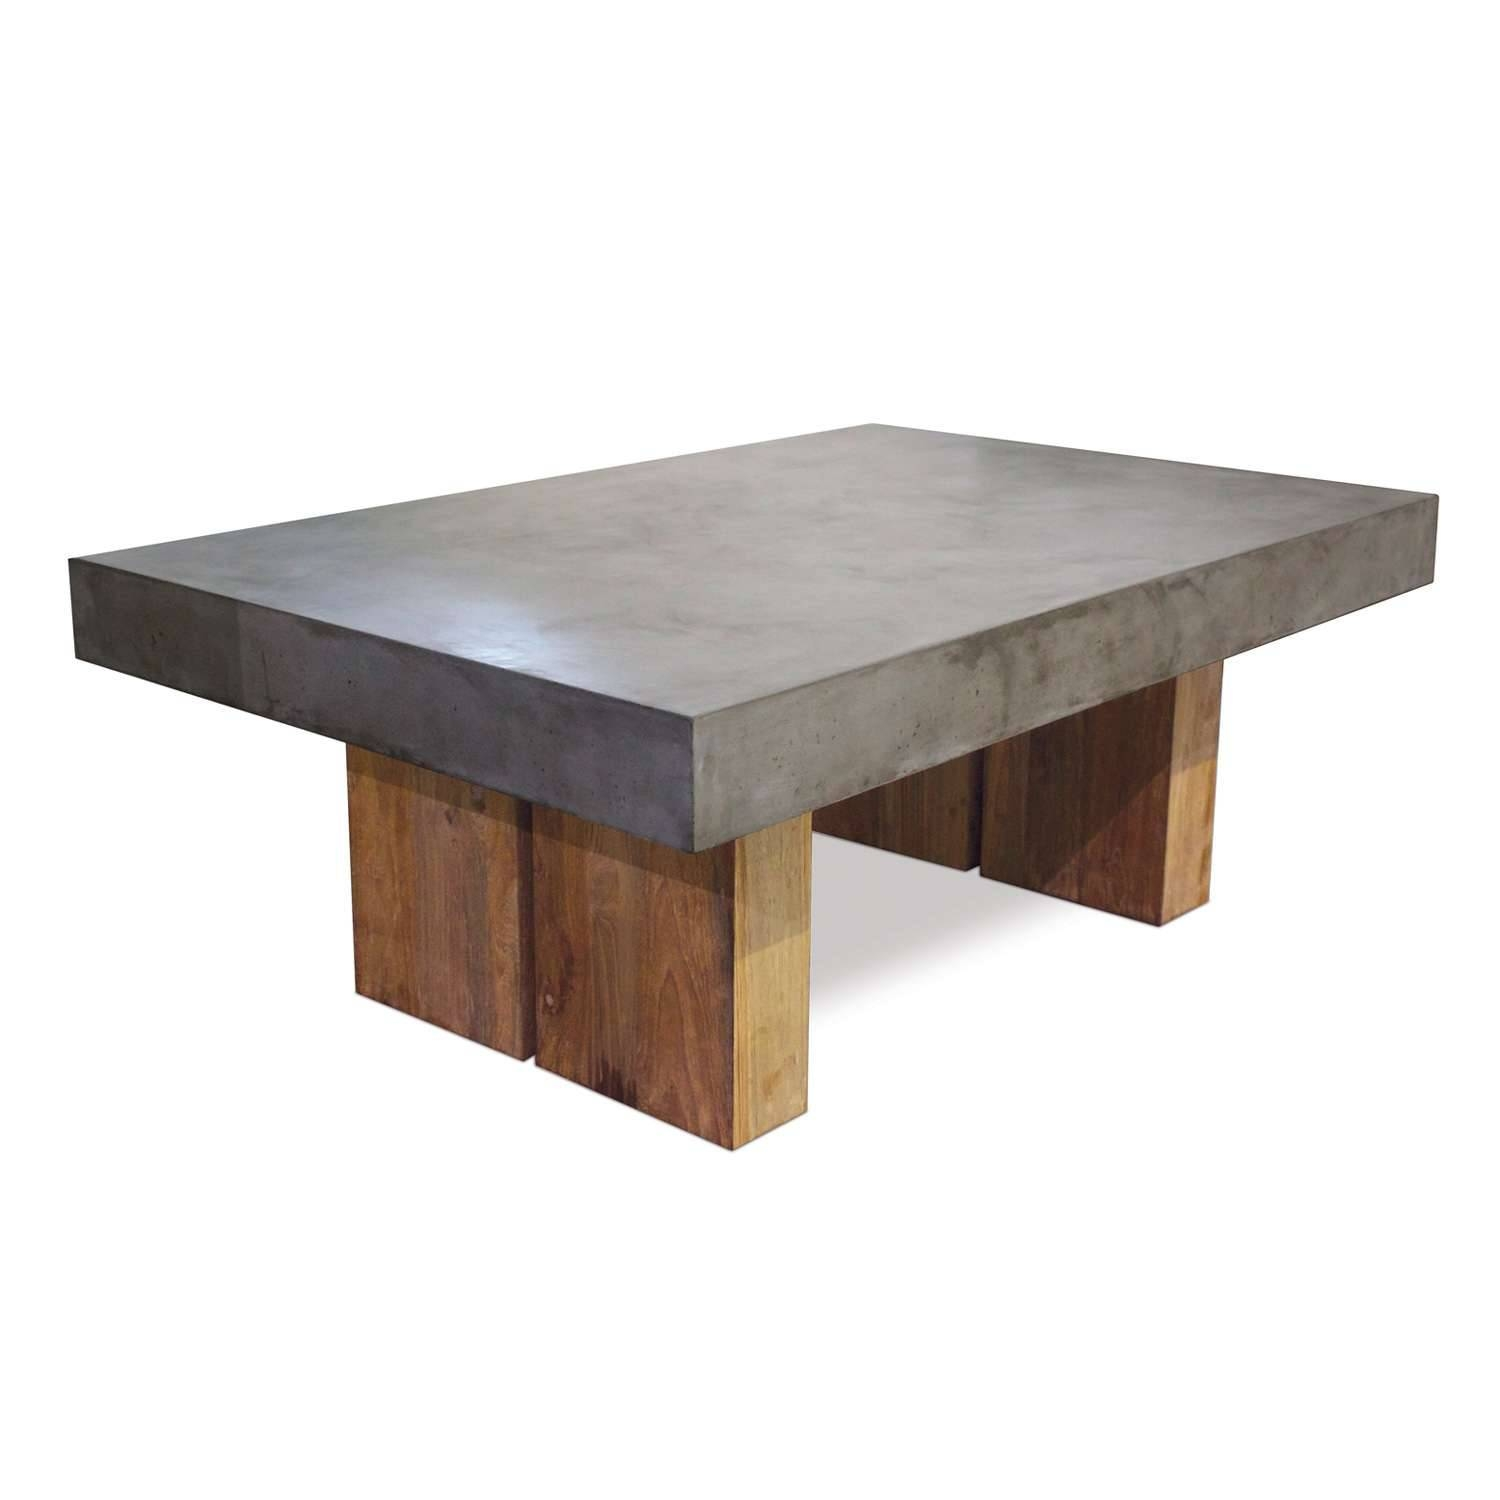 Modern Coffee Tables & Low Tables | Yliving inside Square Stone Coffee Tables (Image 20 of 30)